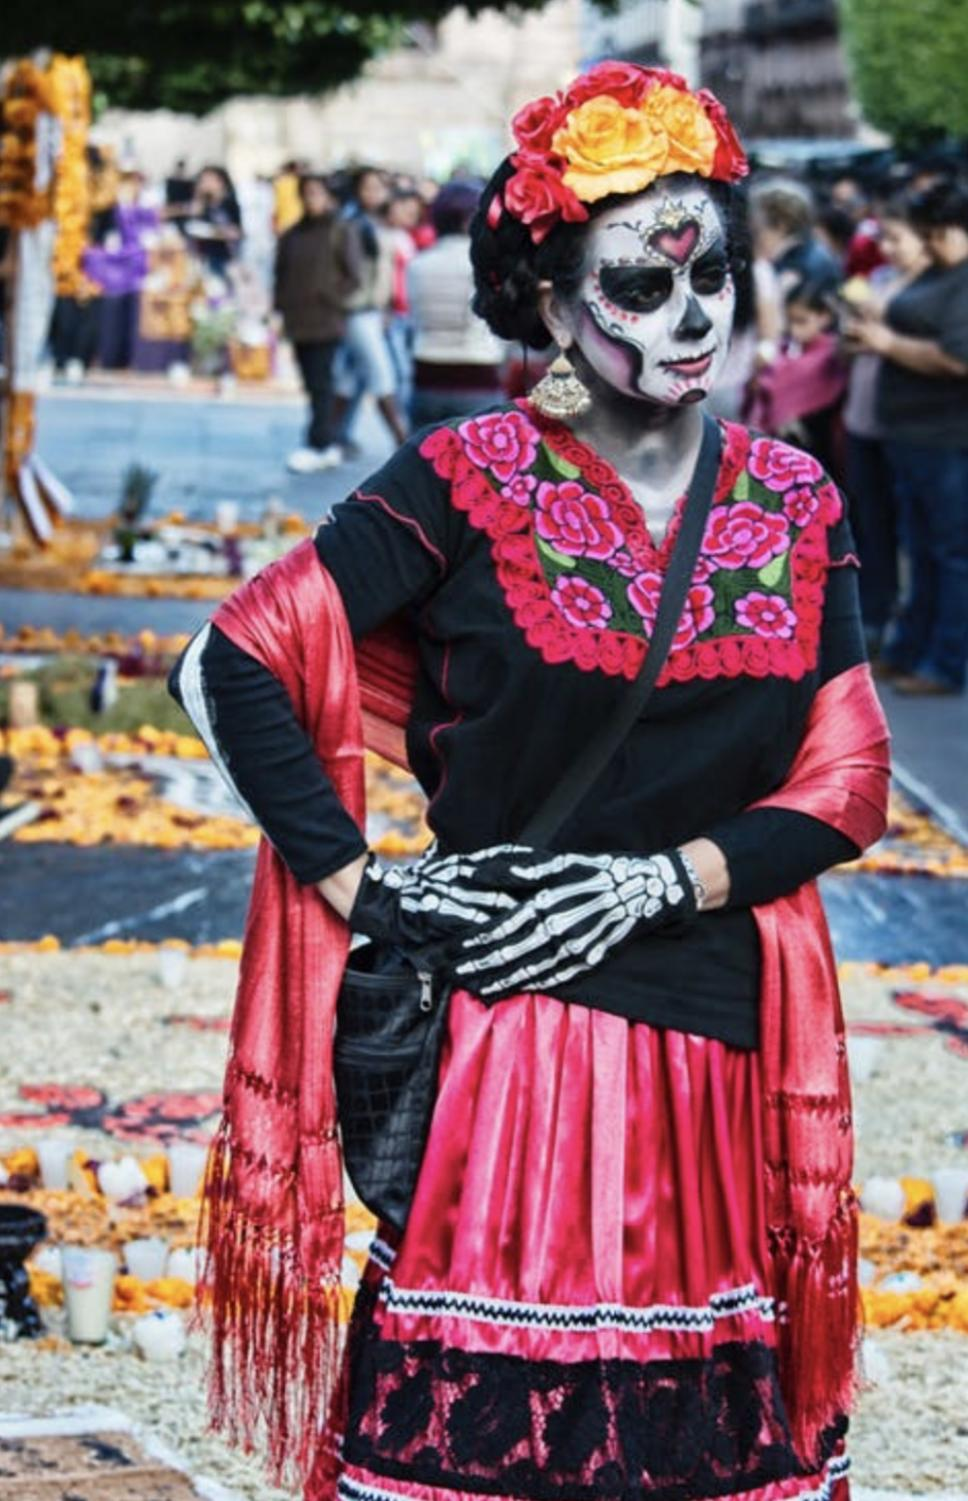 A woman dressed in traditional Day of the Dead attire participates in a celebration in Morelia, Mexico. The Day of the Dead is a traditional multi-day Mexican holiday which gathers families to honor their deceased family members and commemorate them with a decorated altar.